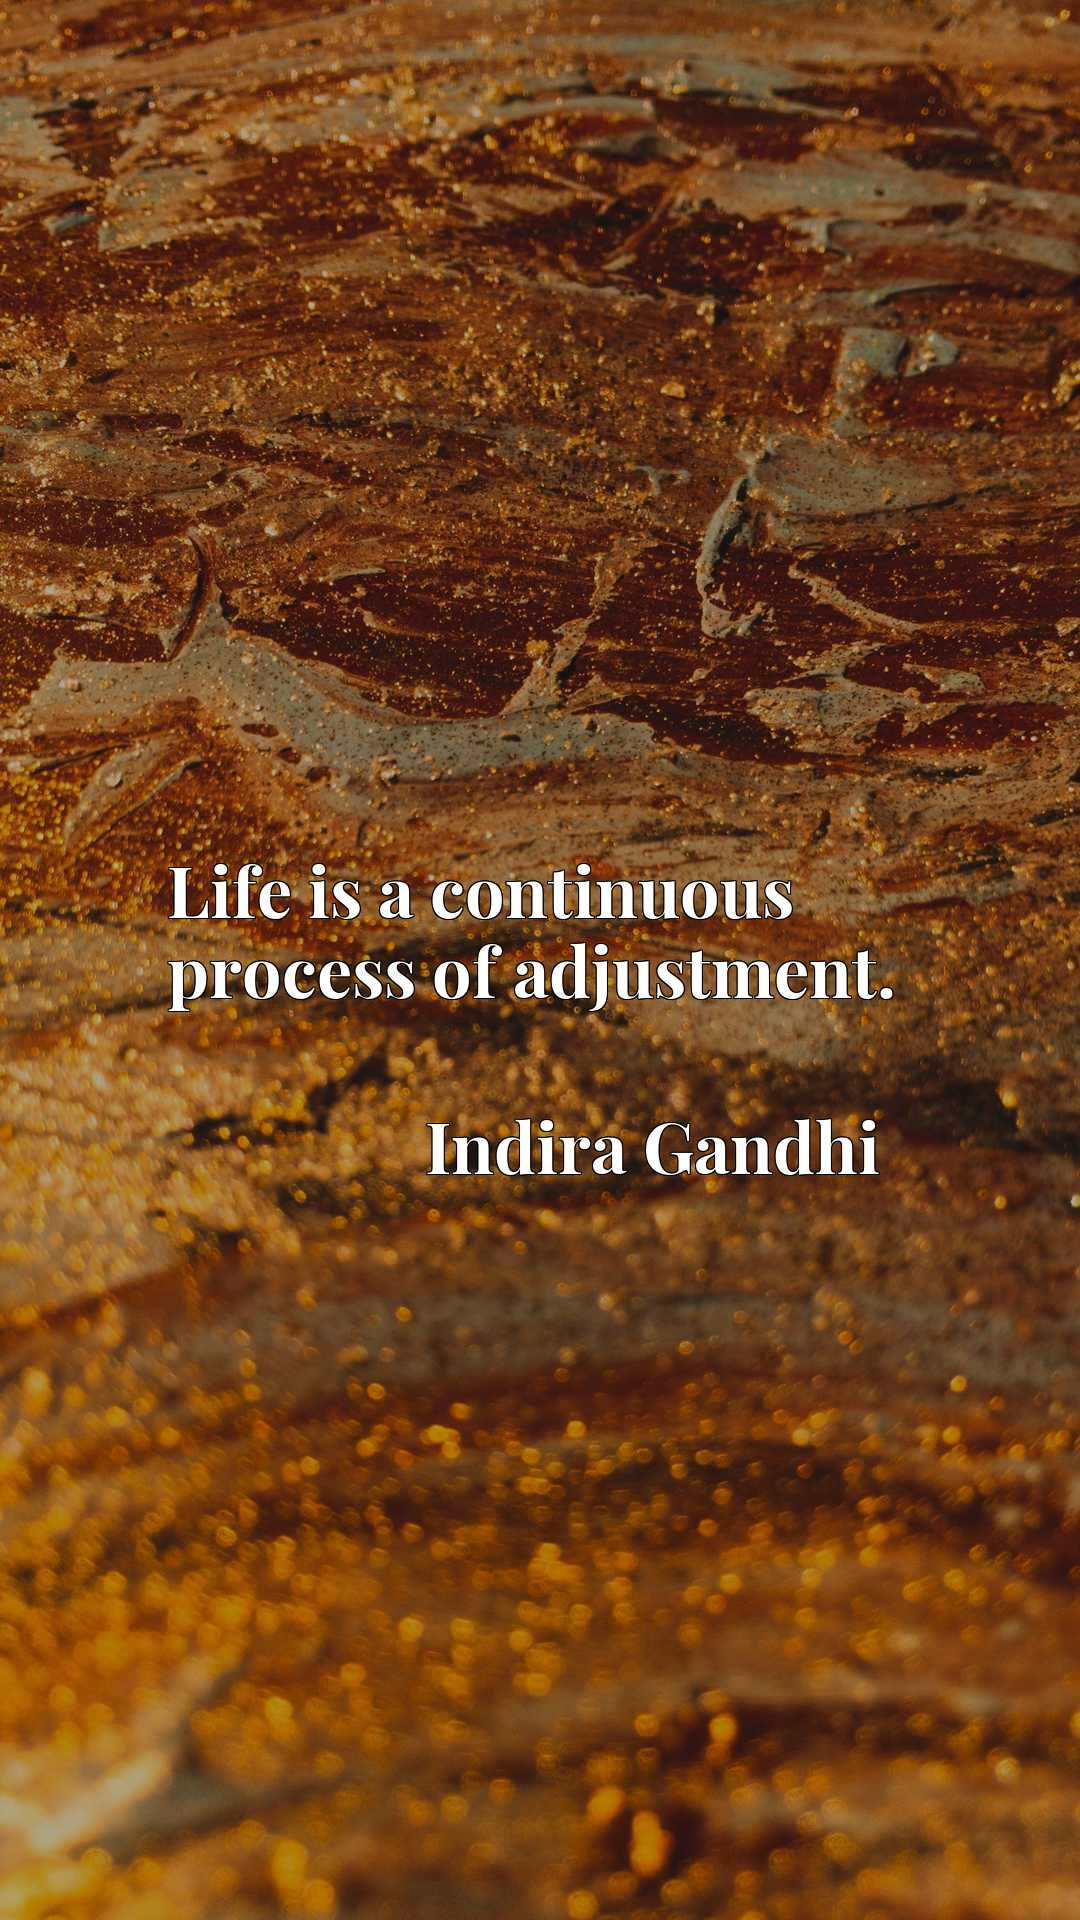 Life is a continuous process of adjustment.